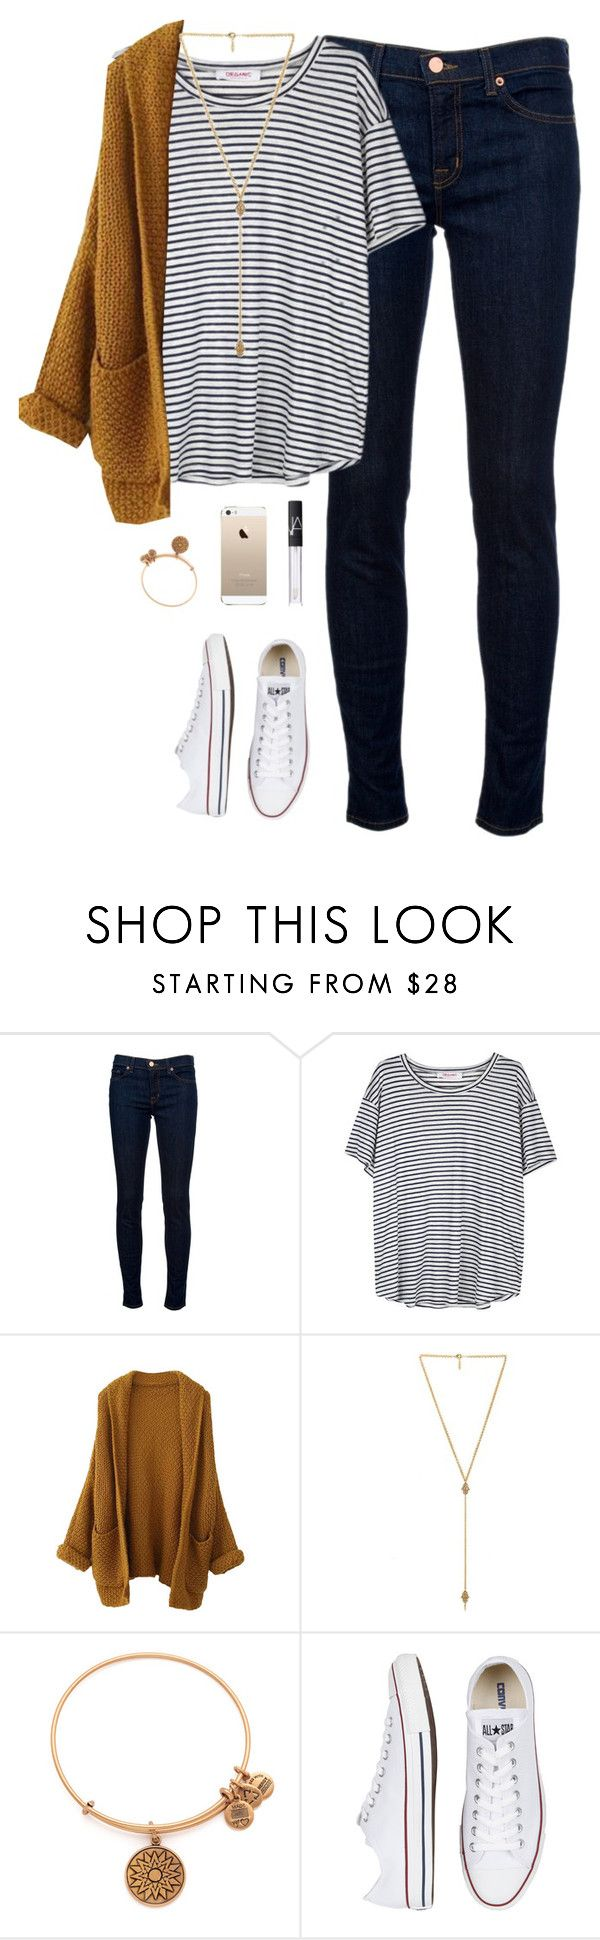 """""""fall casual"""" by classically-preppy ❤ liked on Polyvore featuring J Brand, Organic by John Patrick, Ettika, Alex and Ani, Converse and NARS Cosmetics"""